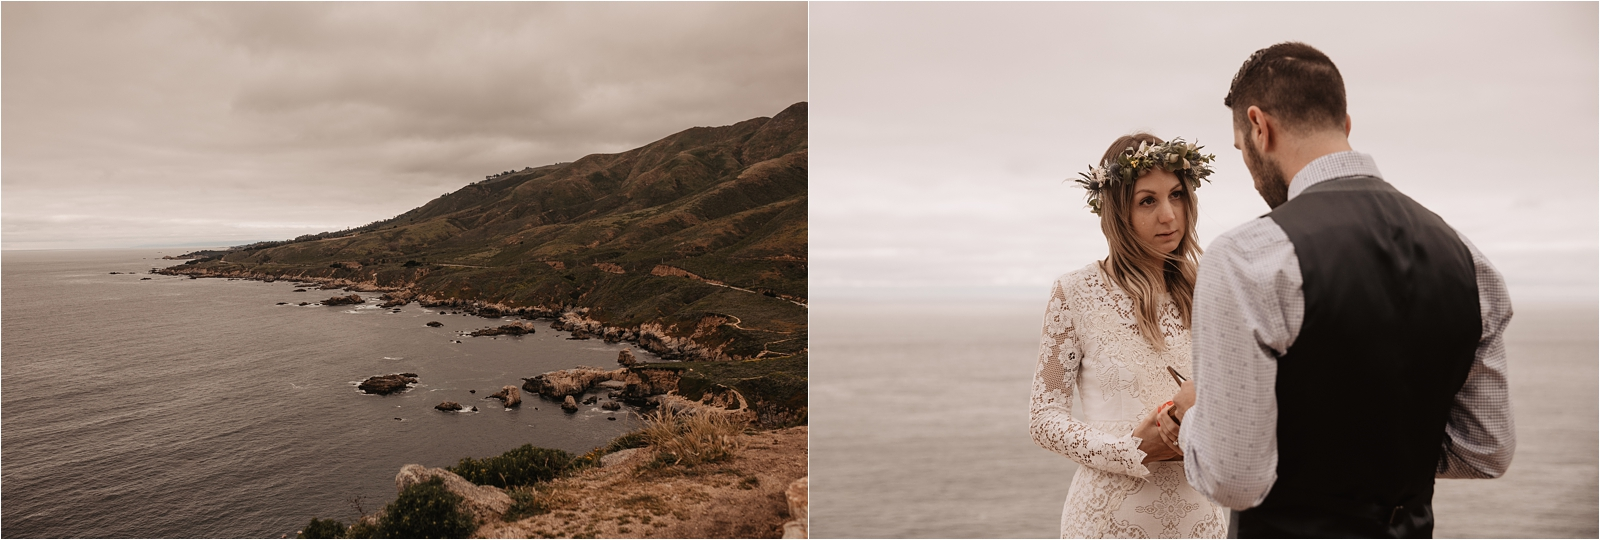 big-sur-adventure-elopement_0033.jpg